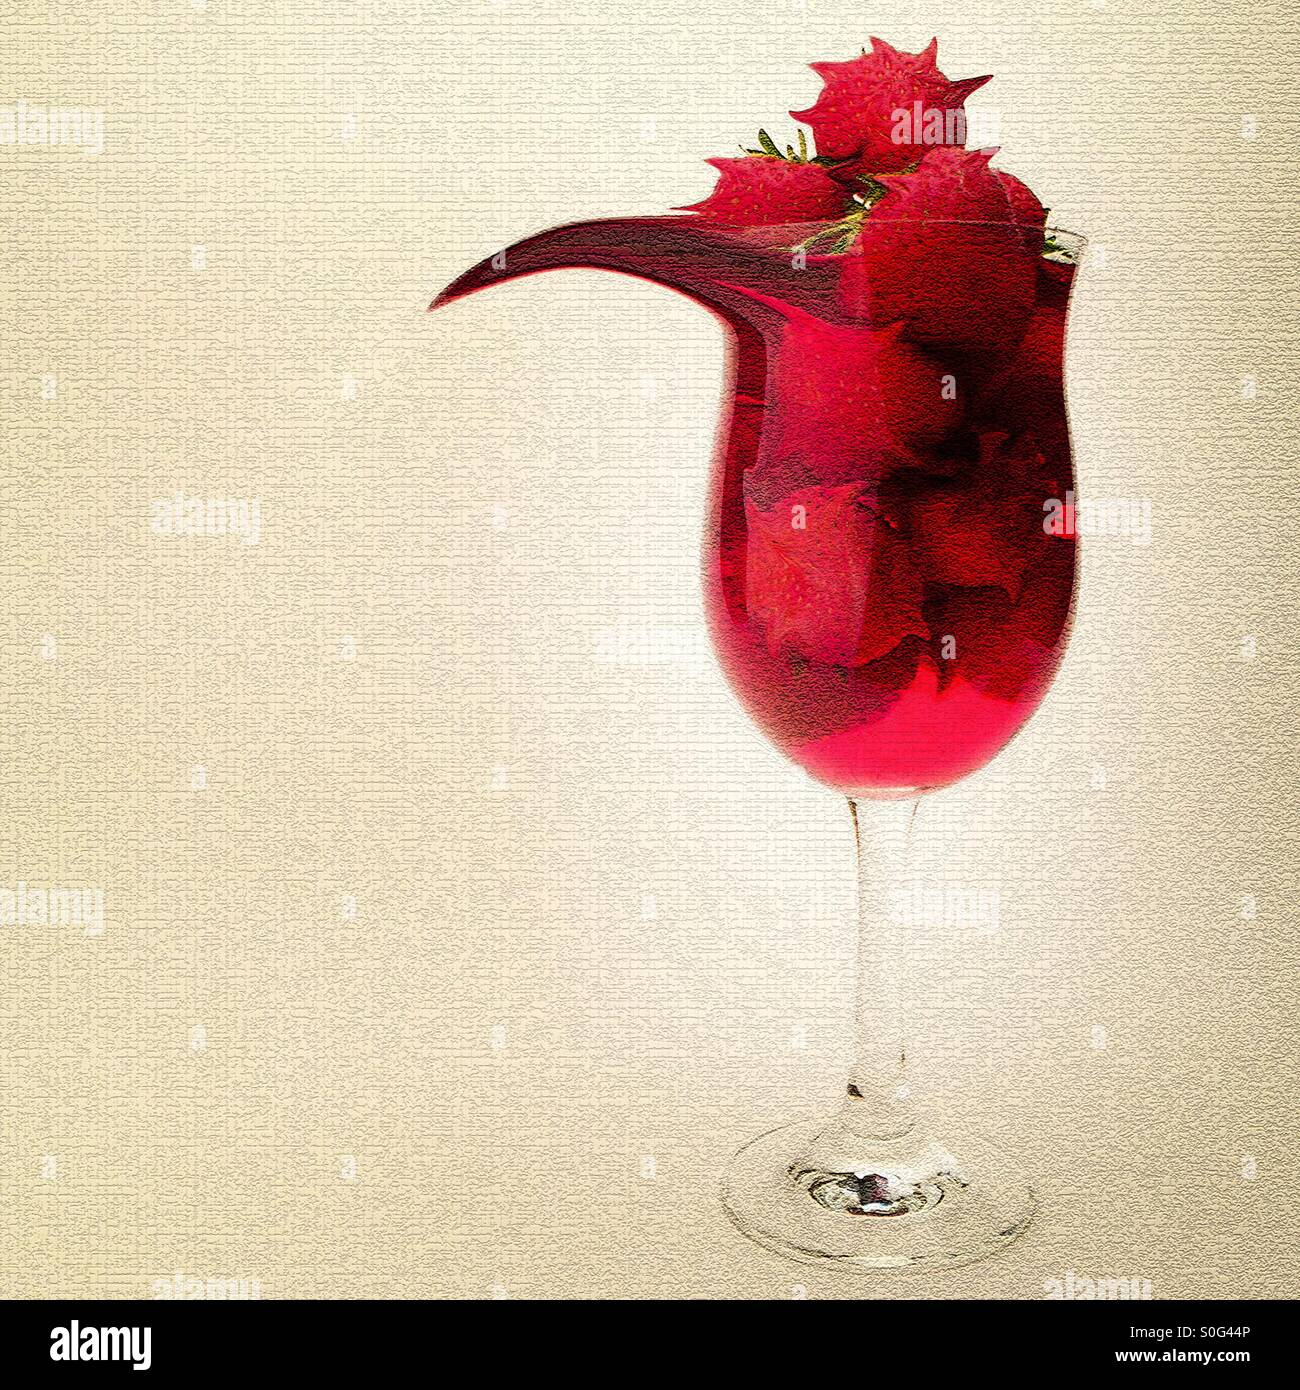 Surreal manipulated image showing strawberries and juice in a tall glass. - Stock Image